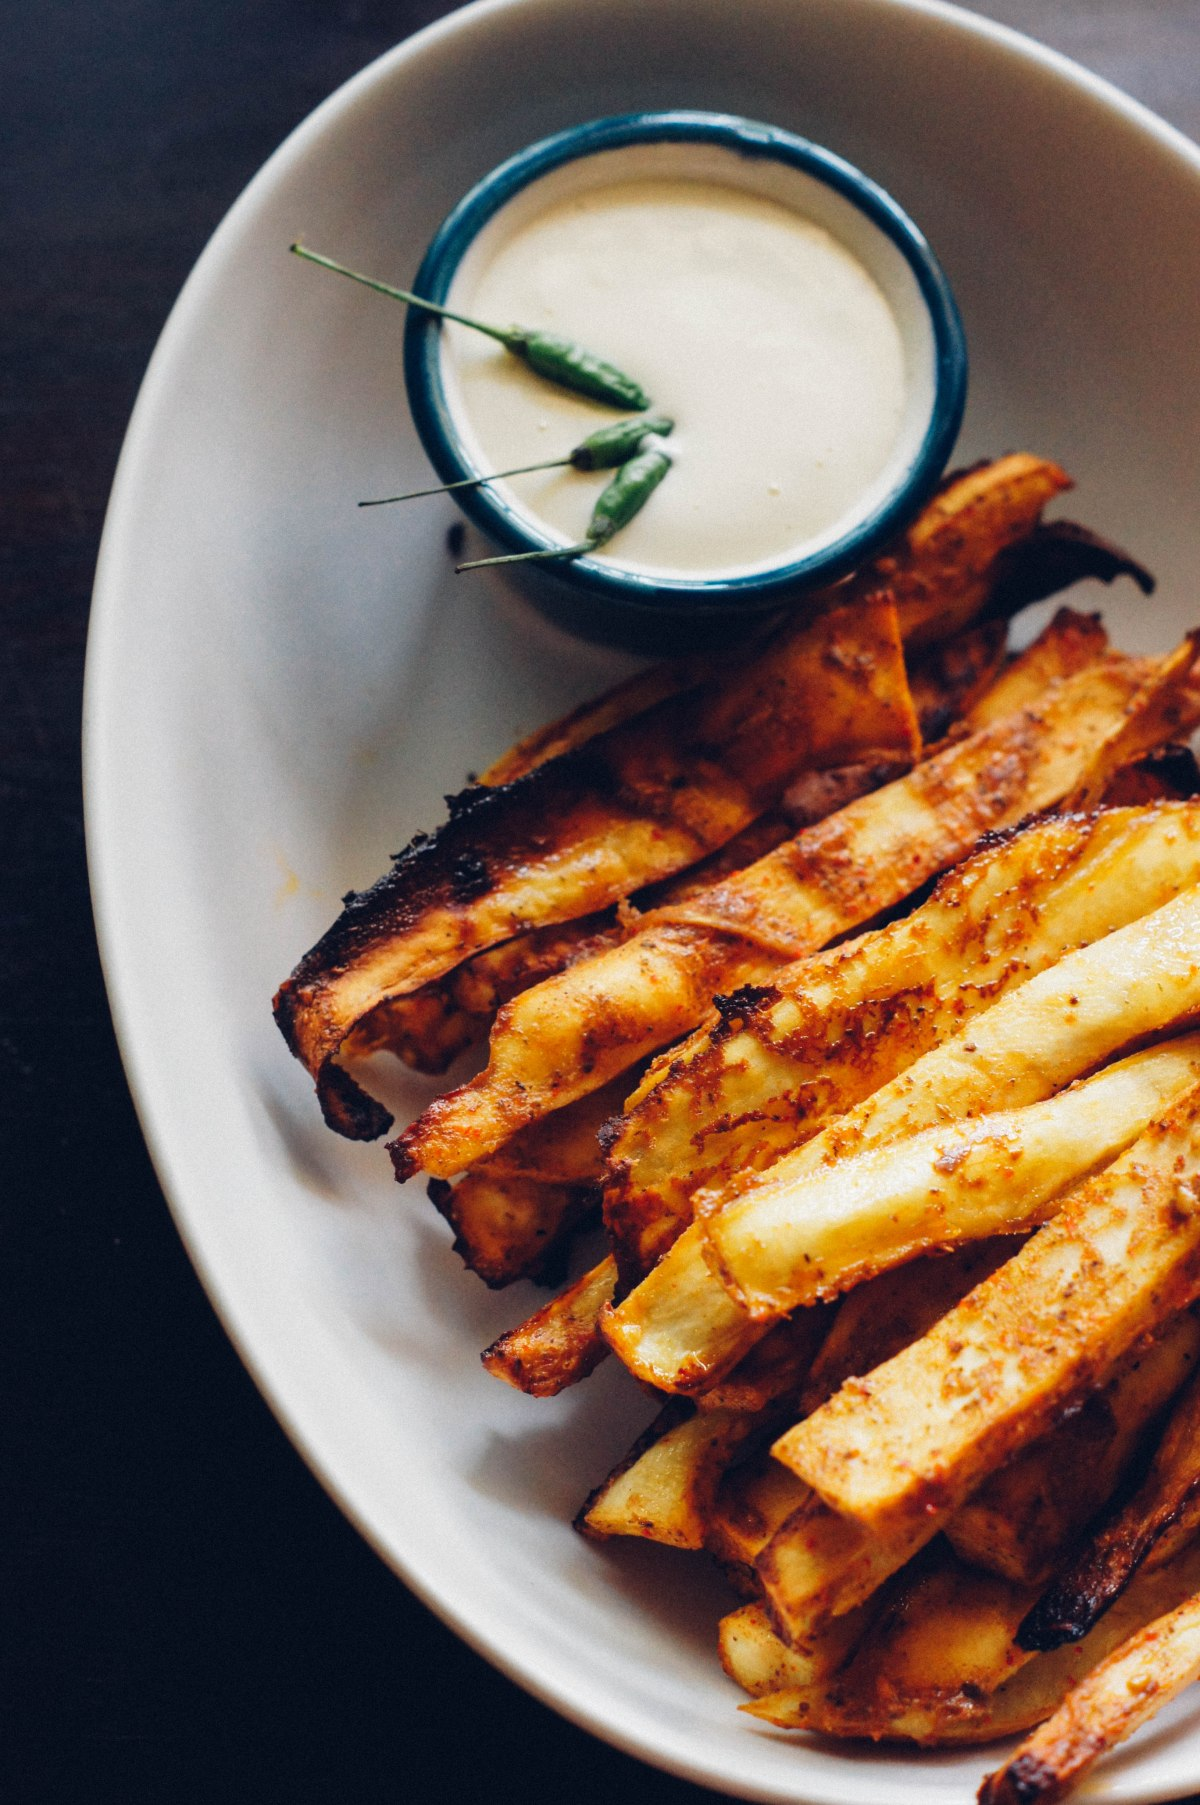 Za'atar Spiced Sweet Potato Fries (Baked)